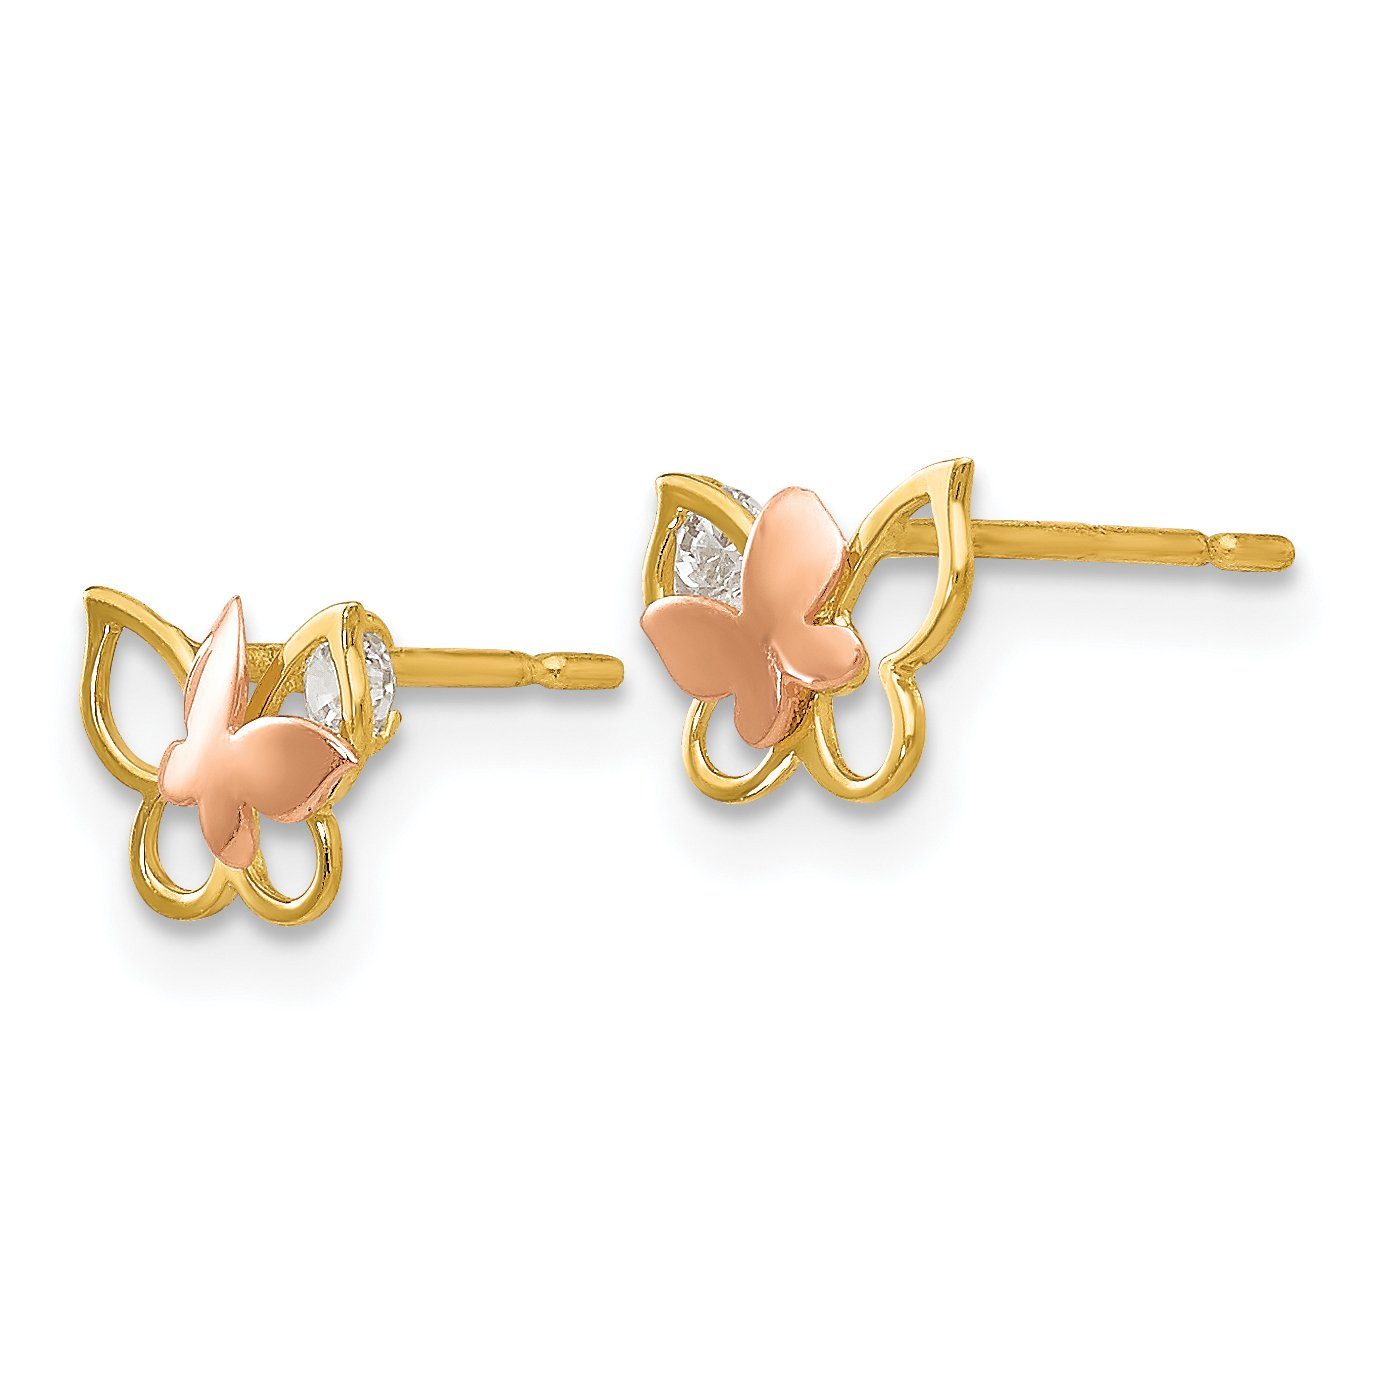 Approximate Measurements 7mm x 8mm Madi K 14K Two-Tone Gold CZ Small Butterfly Post Earrings